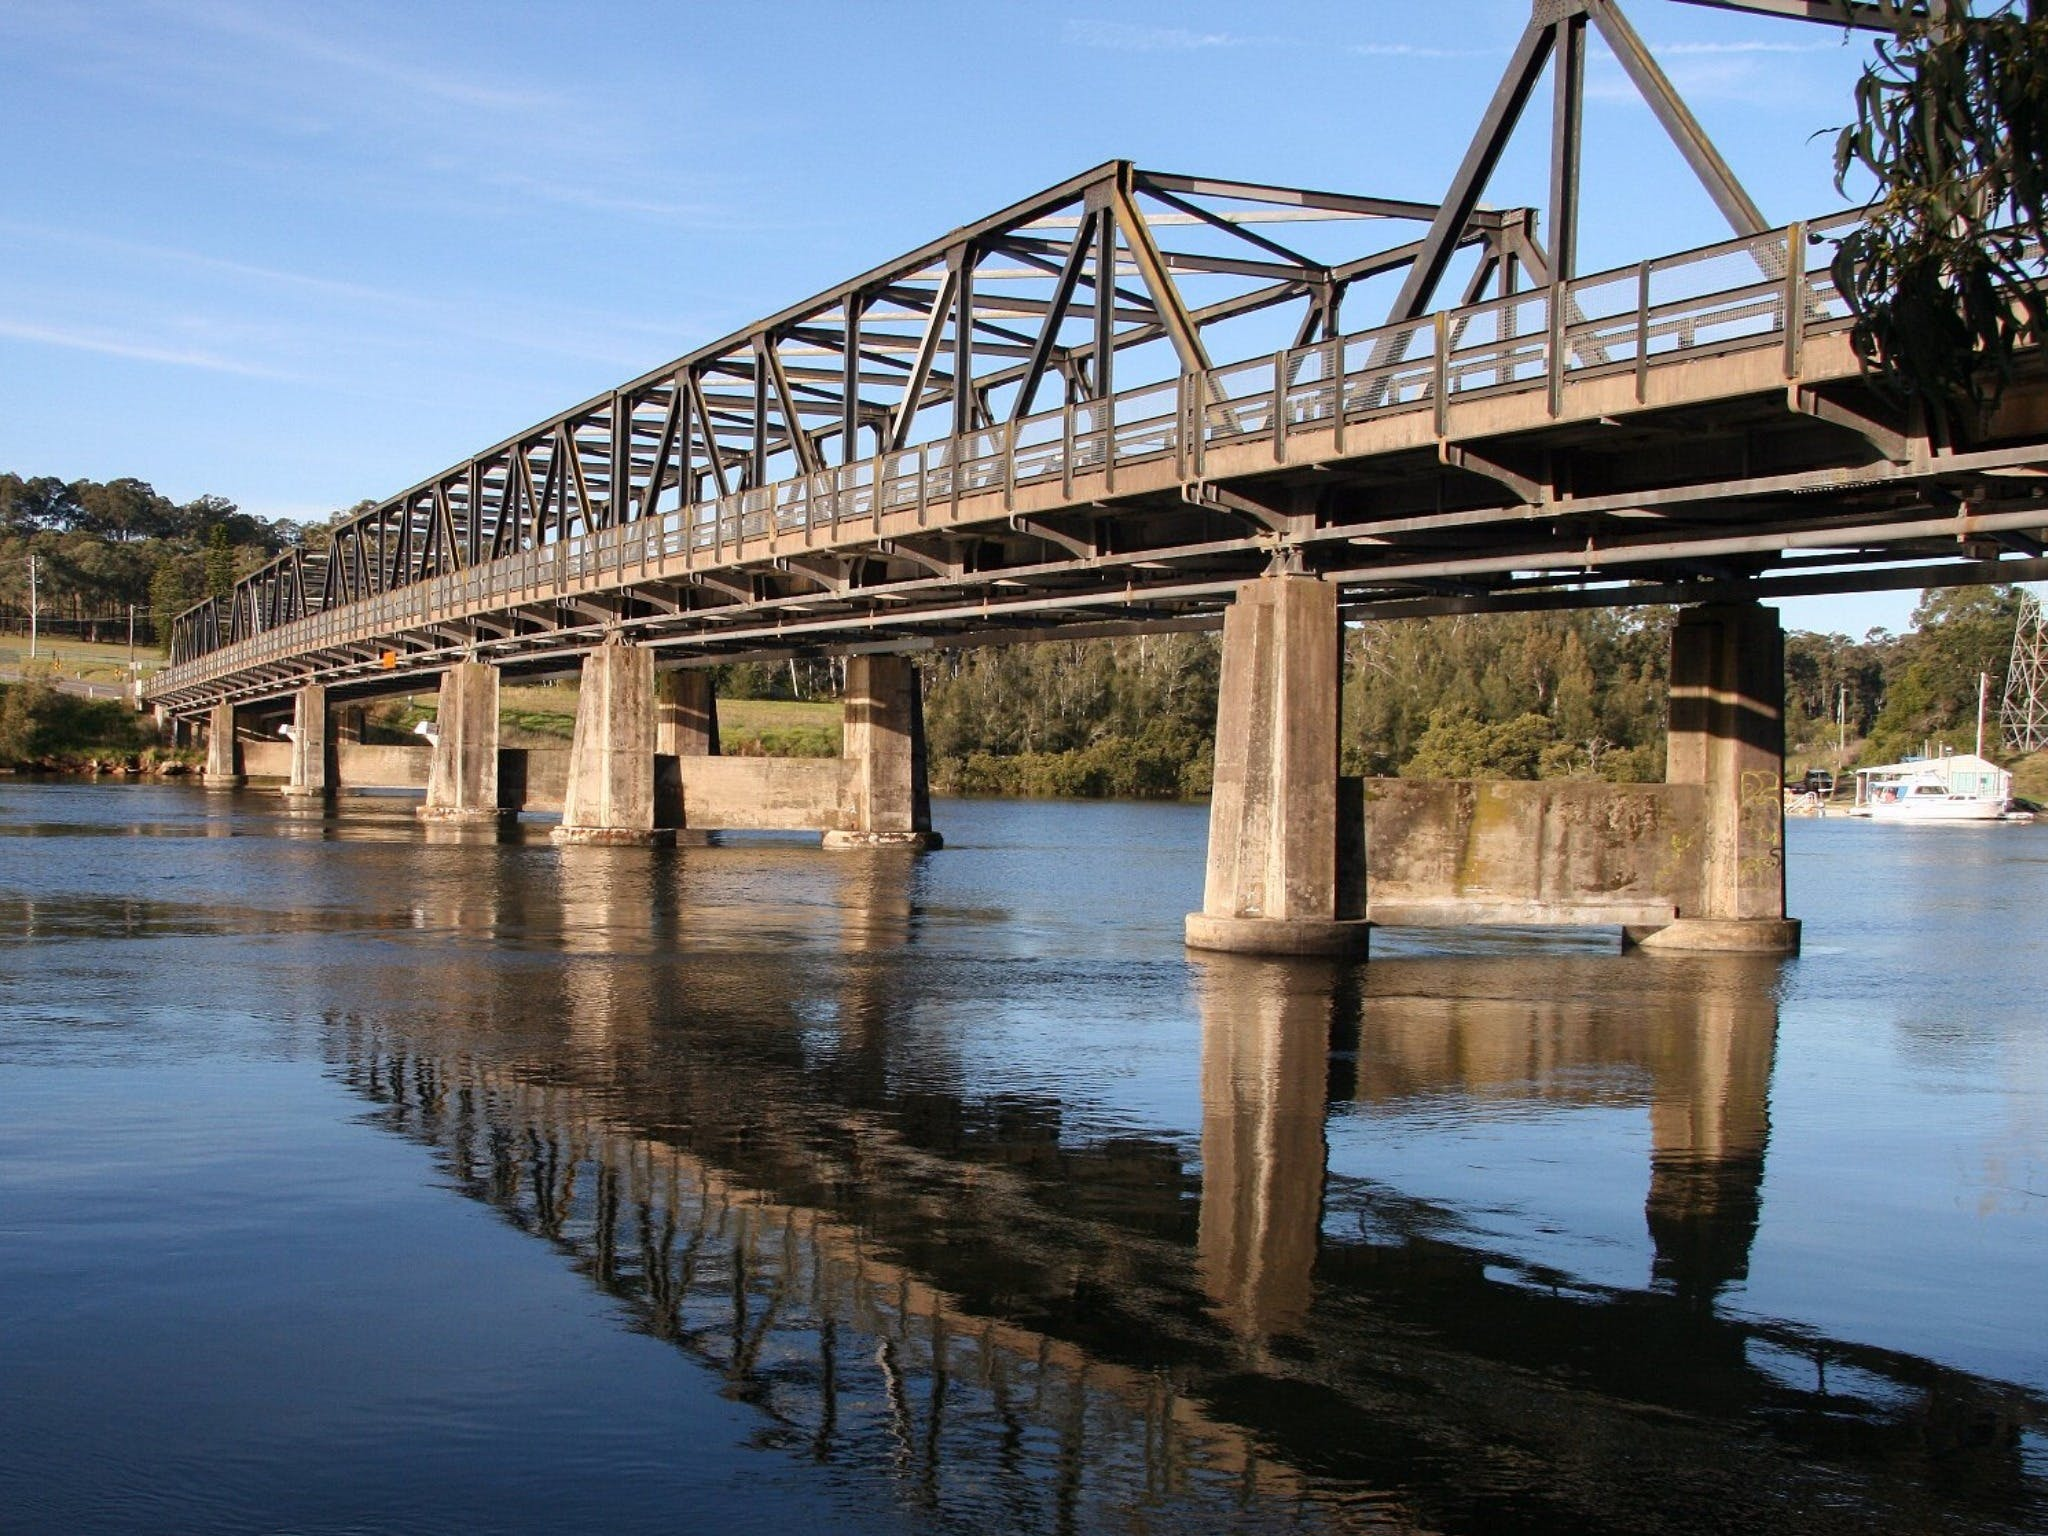 Karuah River - Tweed Heads Accommodation